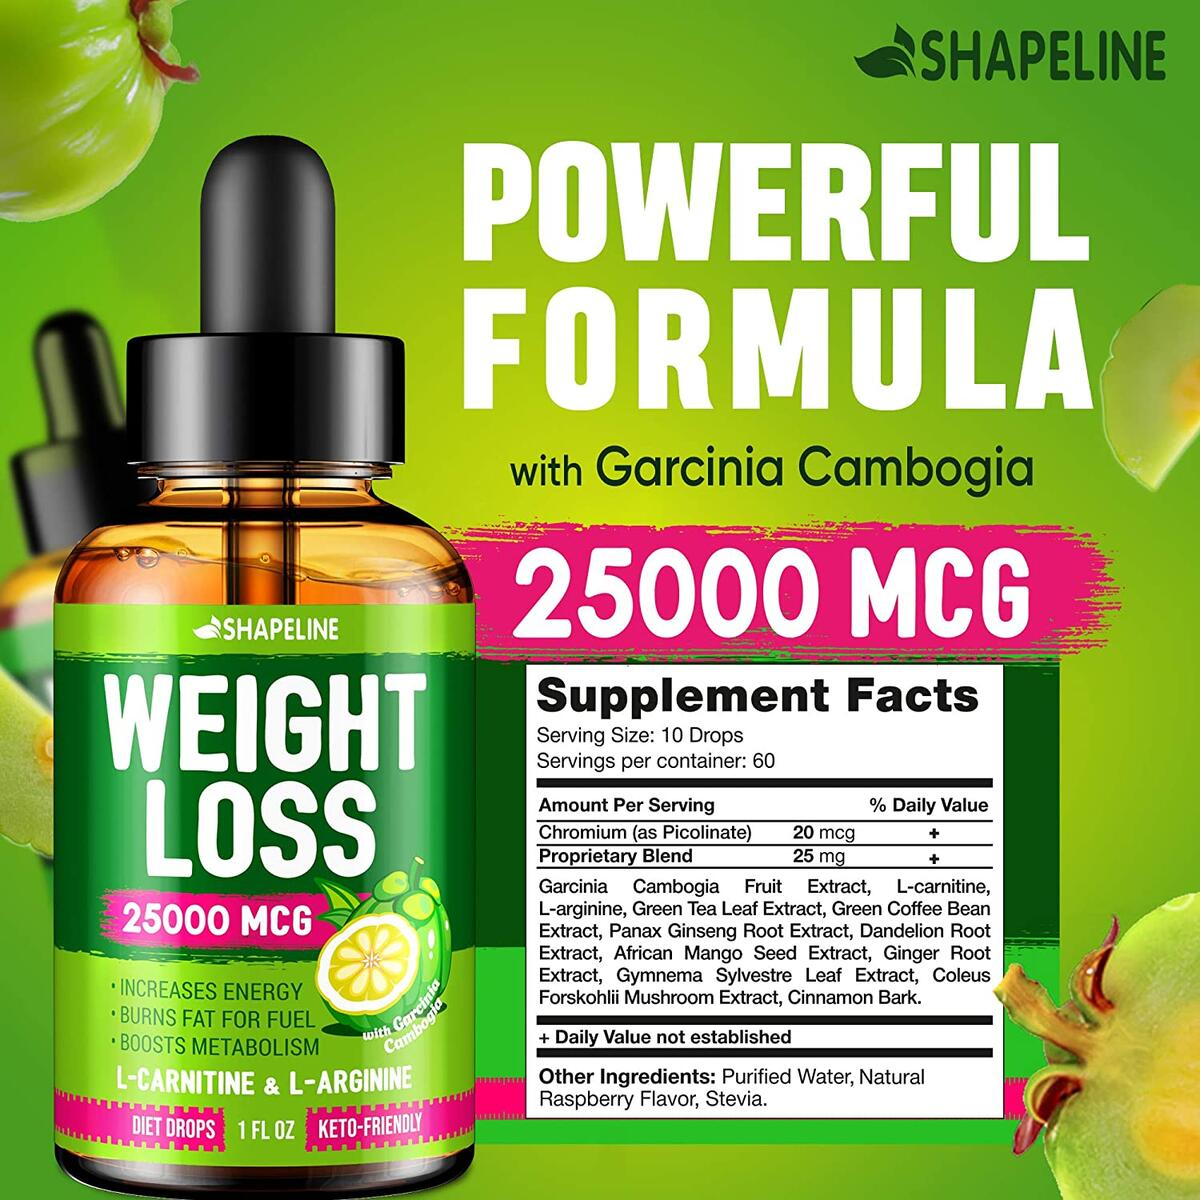 Weight Loss Drops - Appetite Suppressant for Women & Men - Made in The USA - Natural Metabolism Booster - Fast Weight Loss - Diet Drops with Garcinia Cambogia, L-Arginine & L-Glutamine